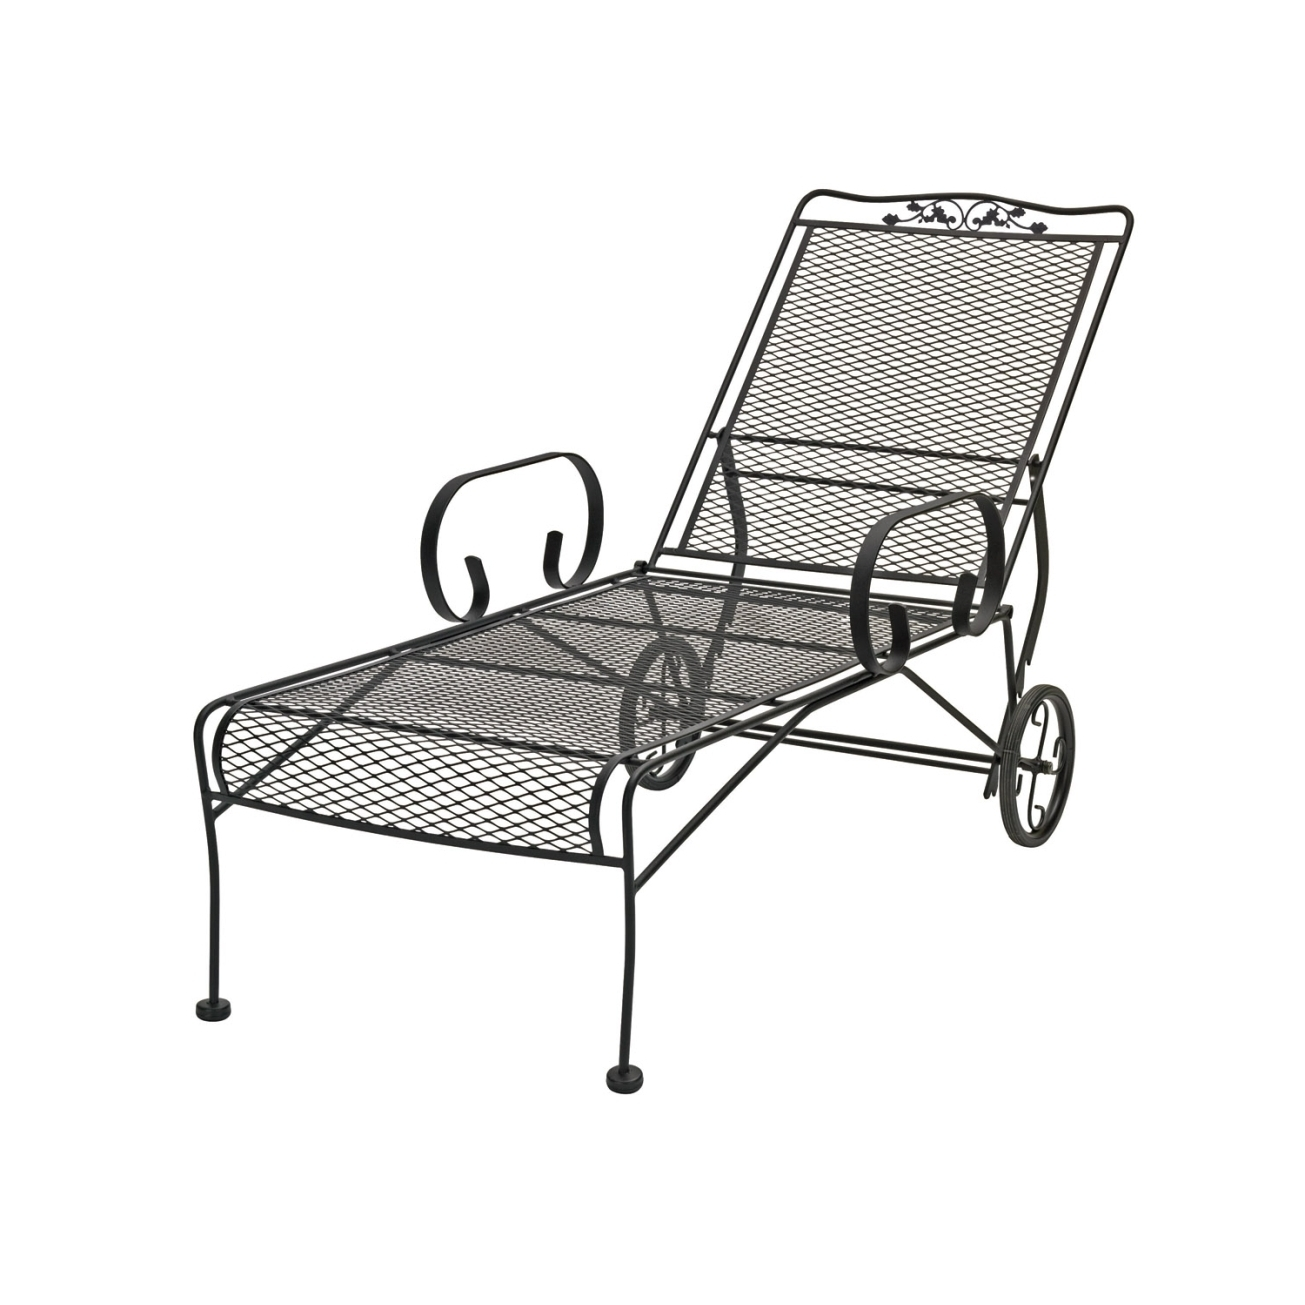 Patio Chaise Lounge Chairs Pertaining To Preferred Lovable Patio Chaise Lounge Chairs Outdoor Lounge Chairs Outdoor (View 5 of 15)